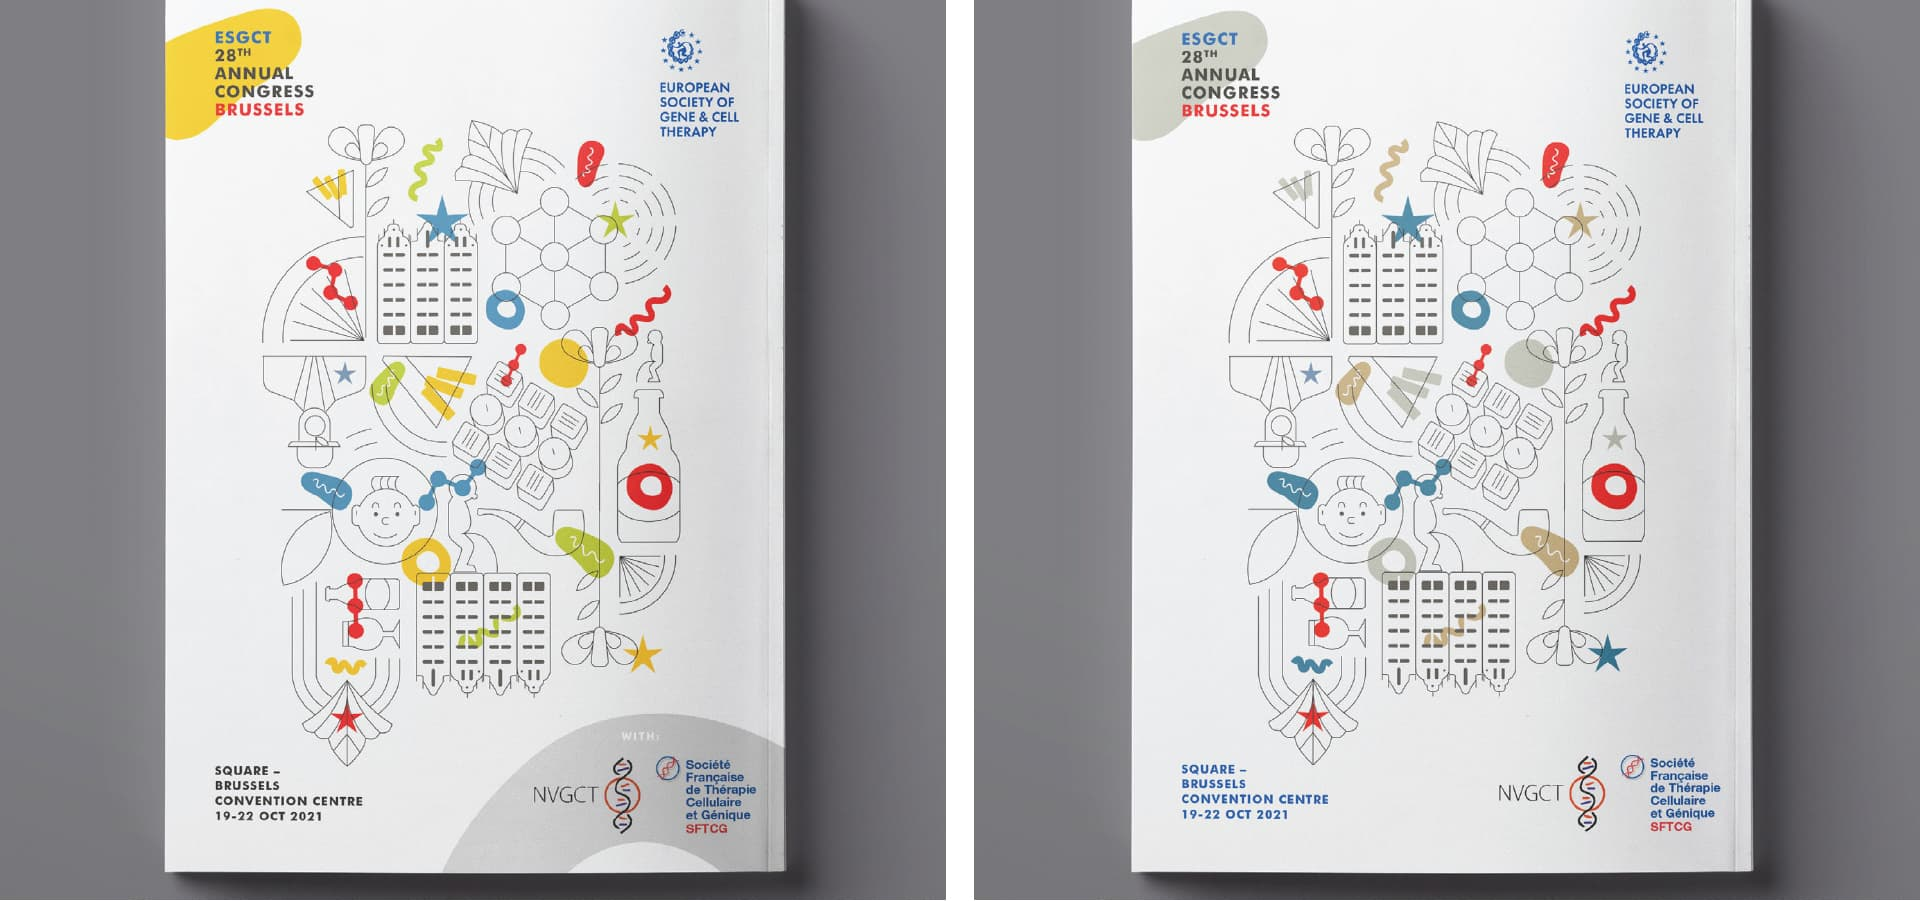 ESGCT Congress Brussels 2021 Posters